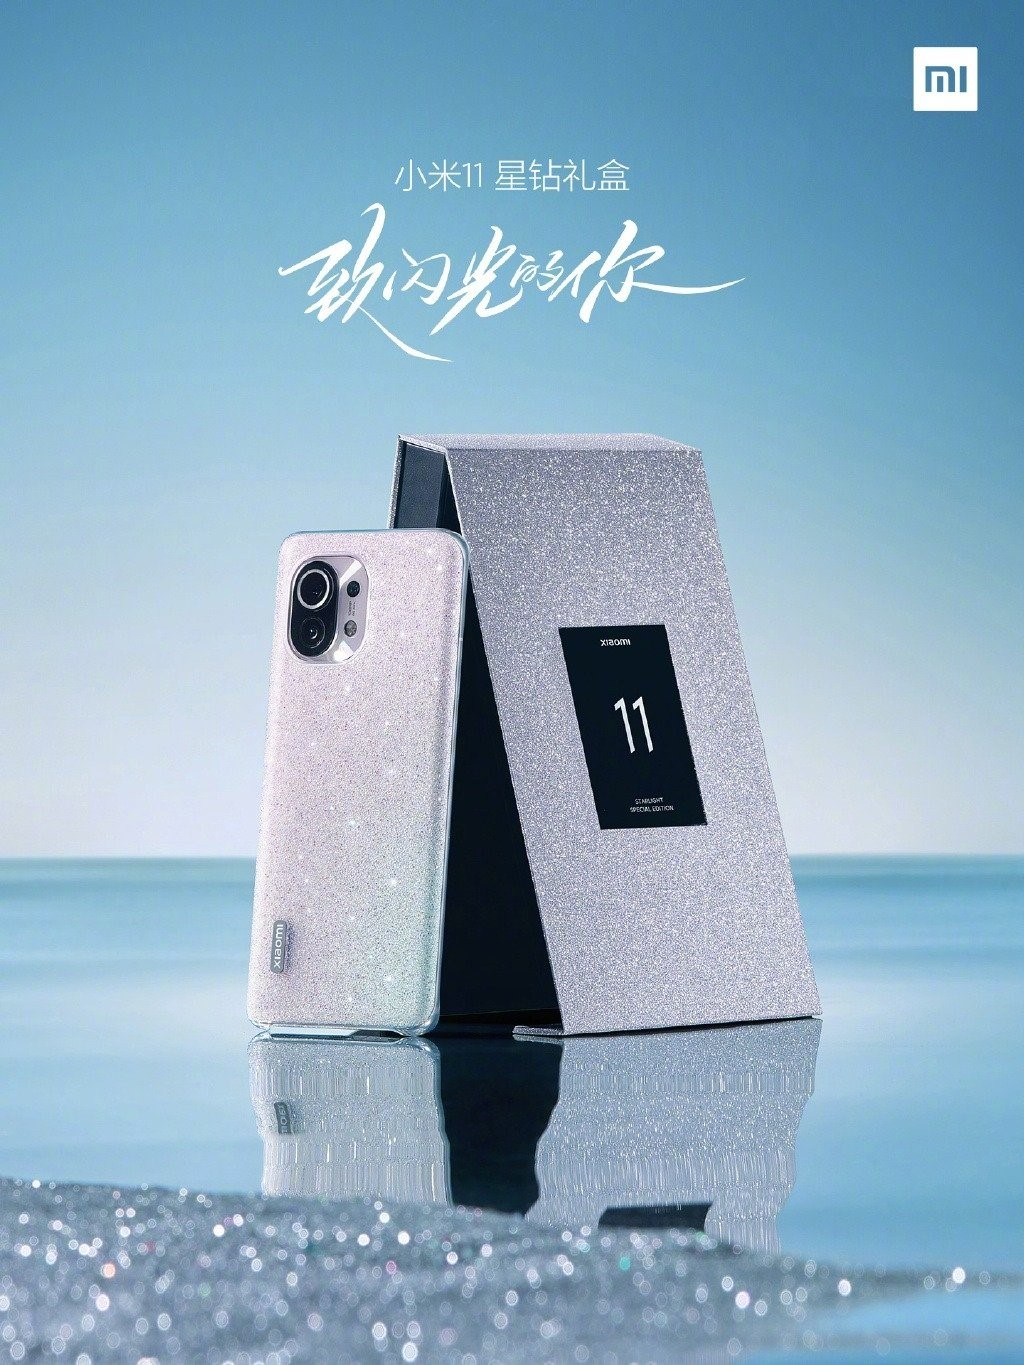 Представлен смартфон Xiaomi Mi 11 Star Diamond Gift Box Edition